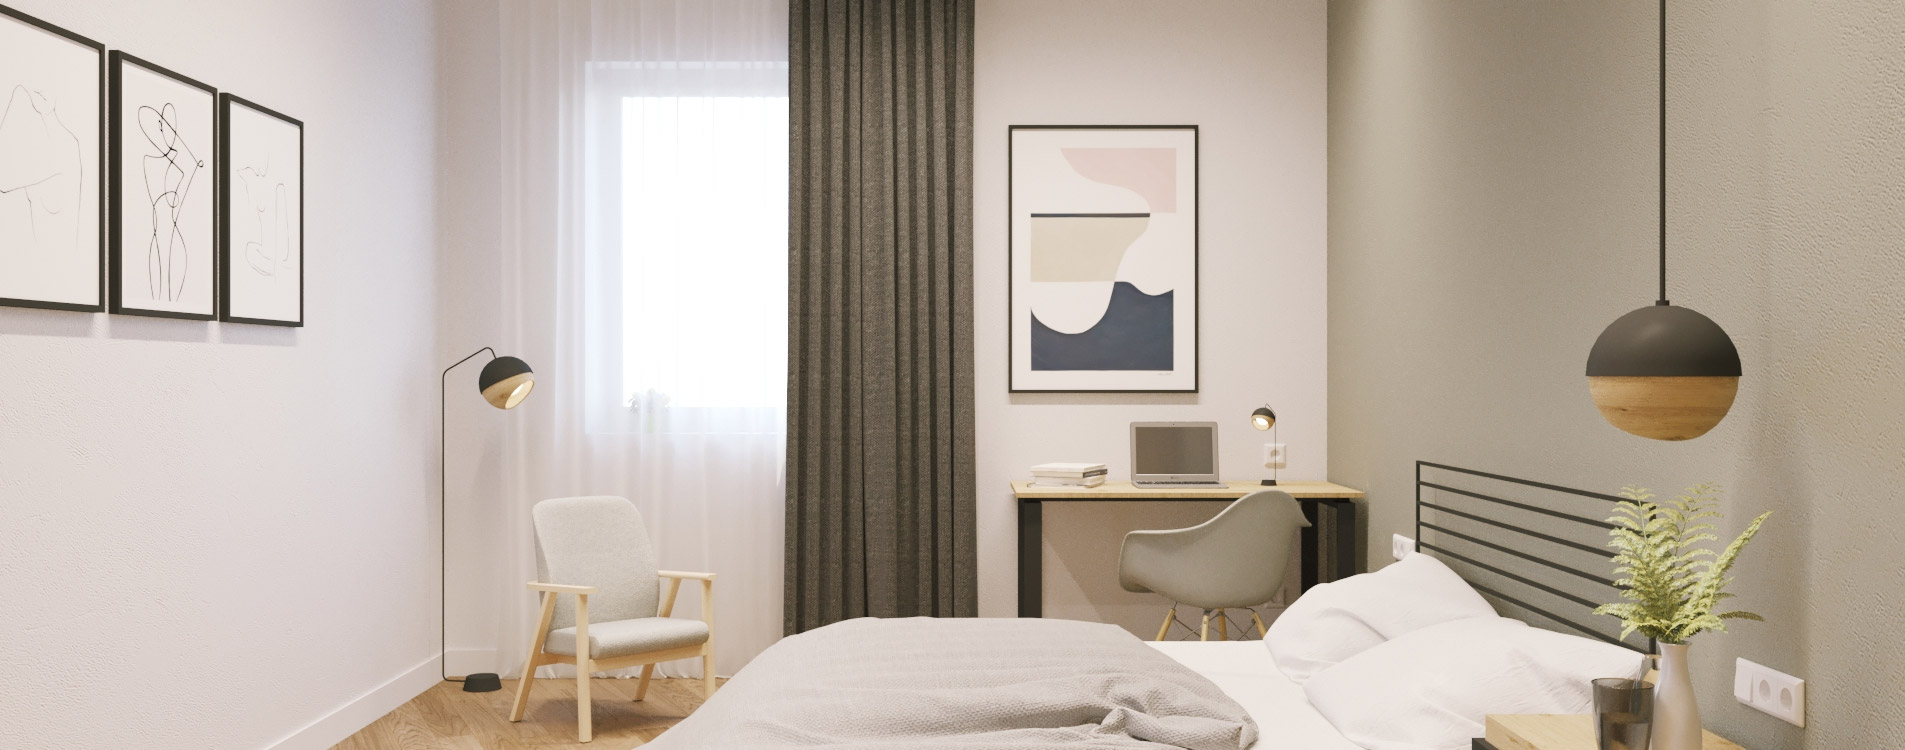 zbauer-architects-201910-kids-bedrooms-2-022-banner-1-compressed